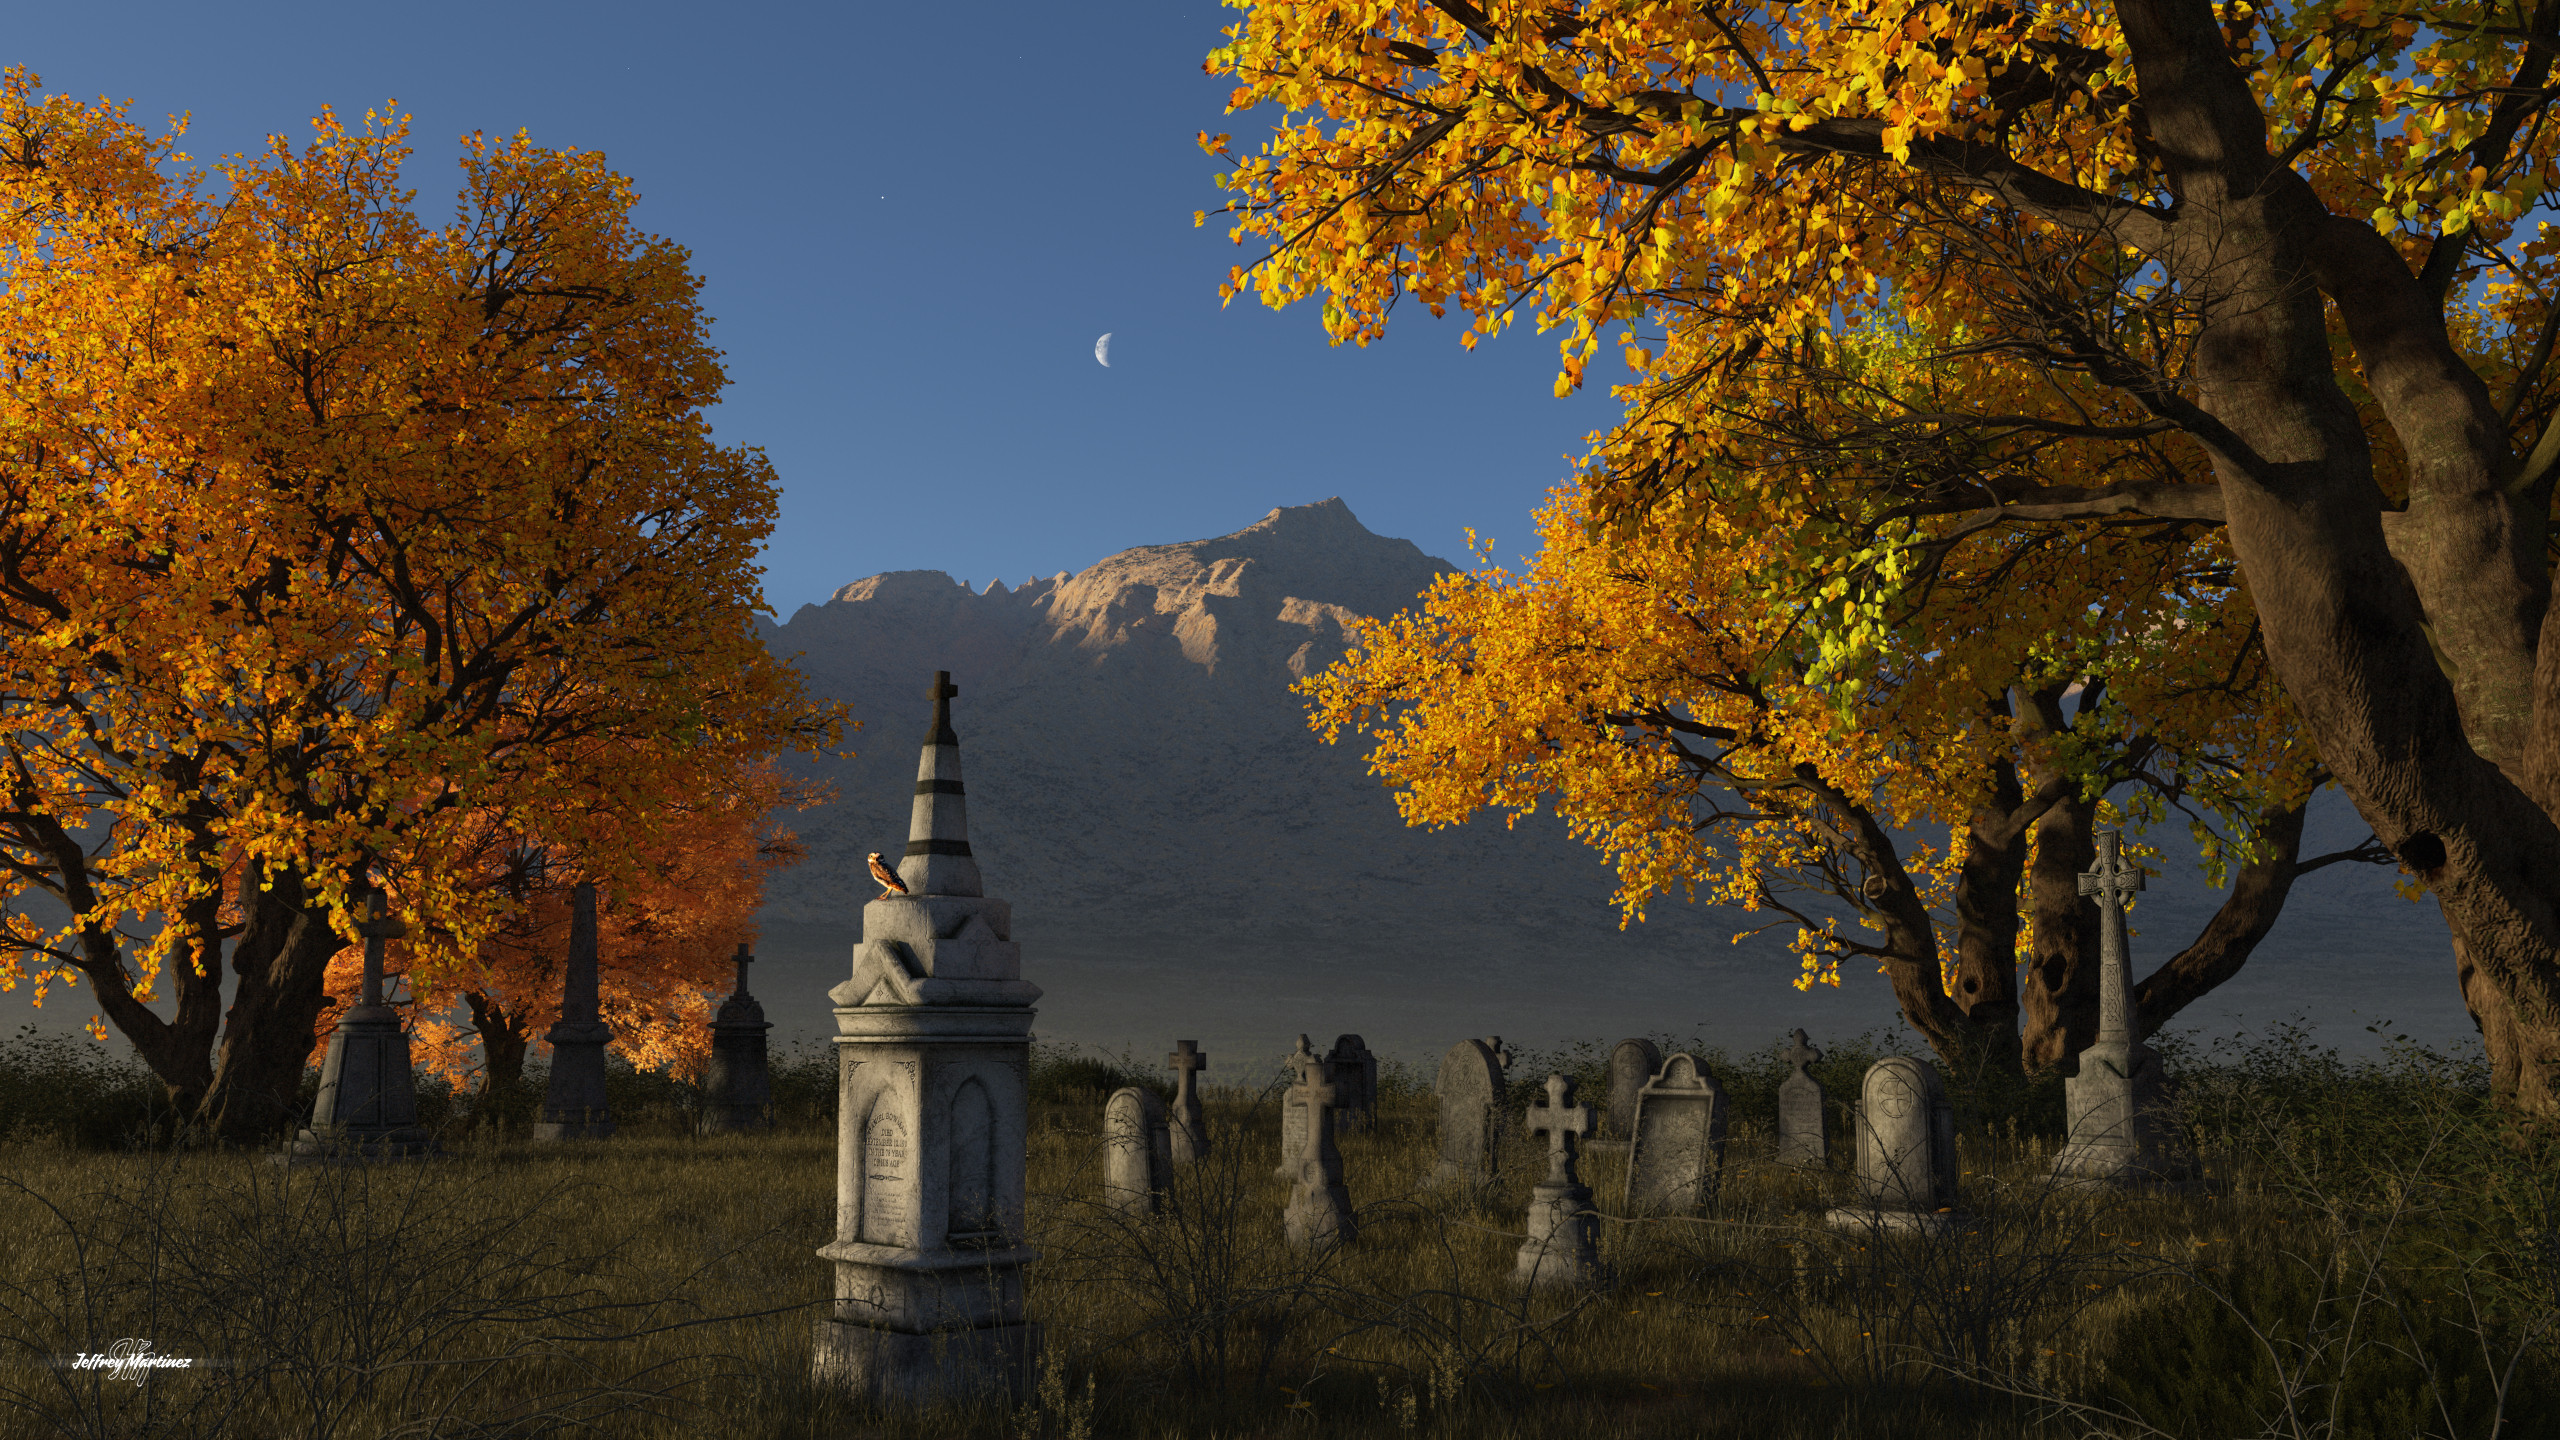 The Old Cottonwood Cemetery 20211002TG